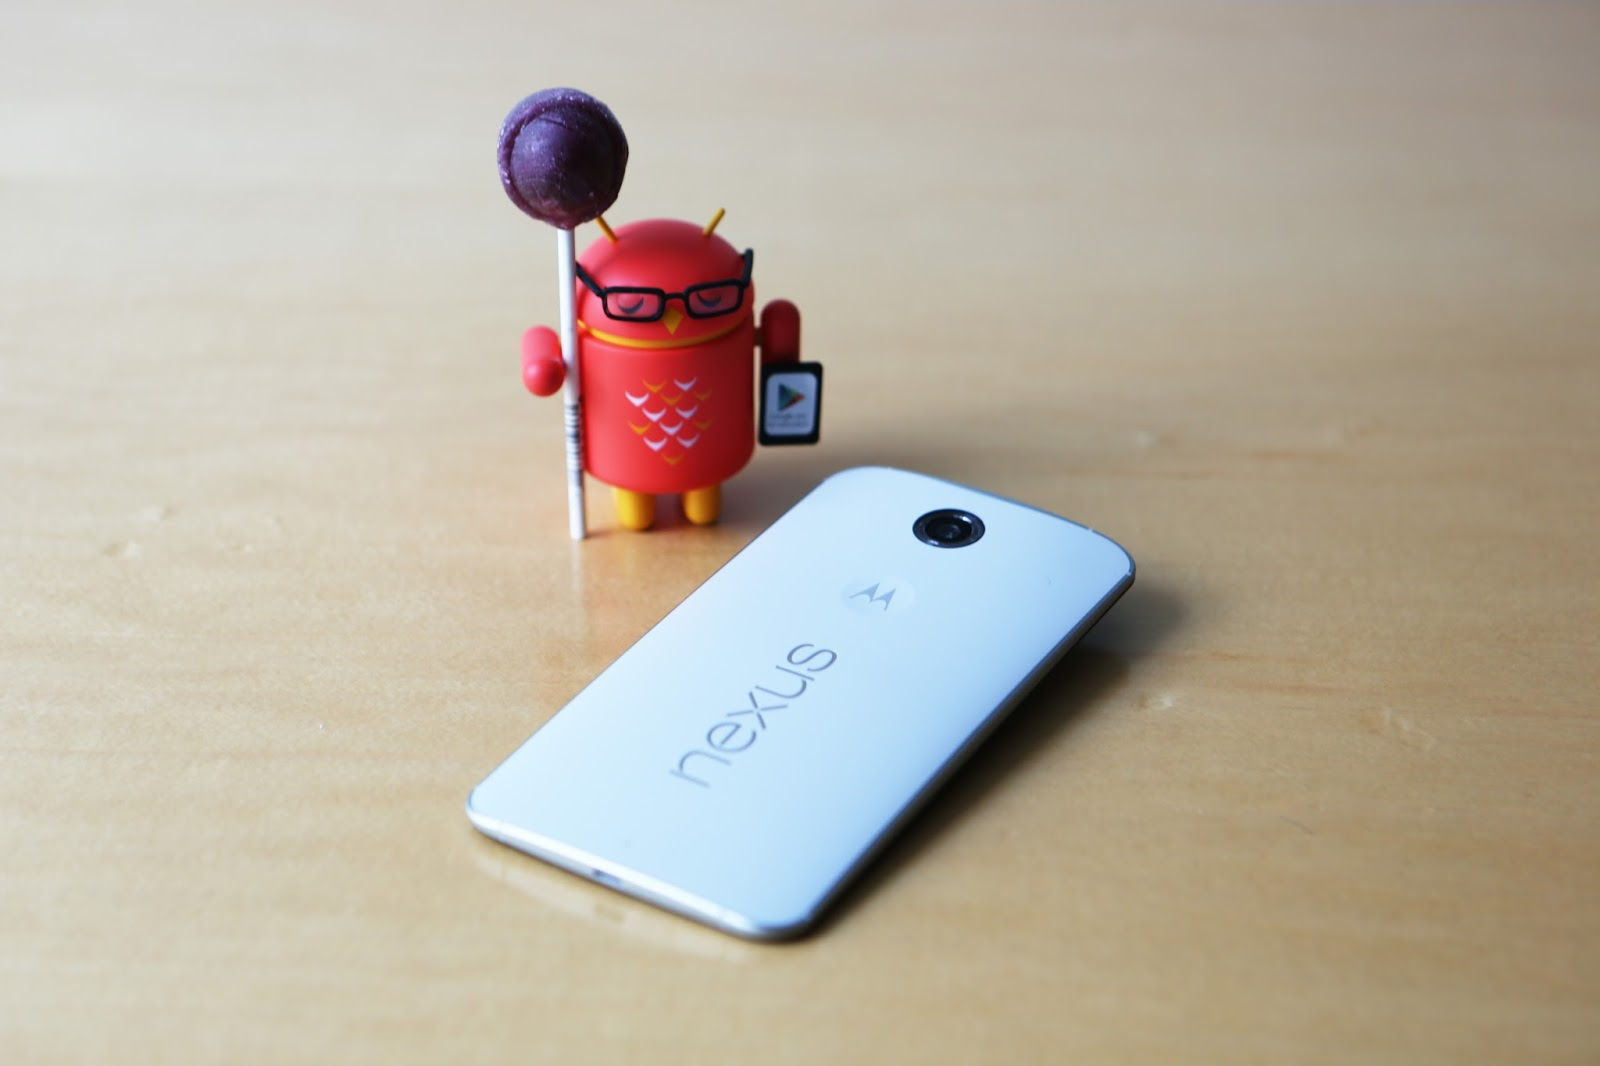 Nexus 6 from Google and Motorola: More Android. More screen. More everything.